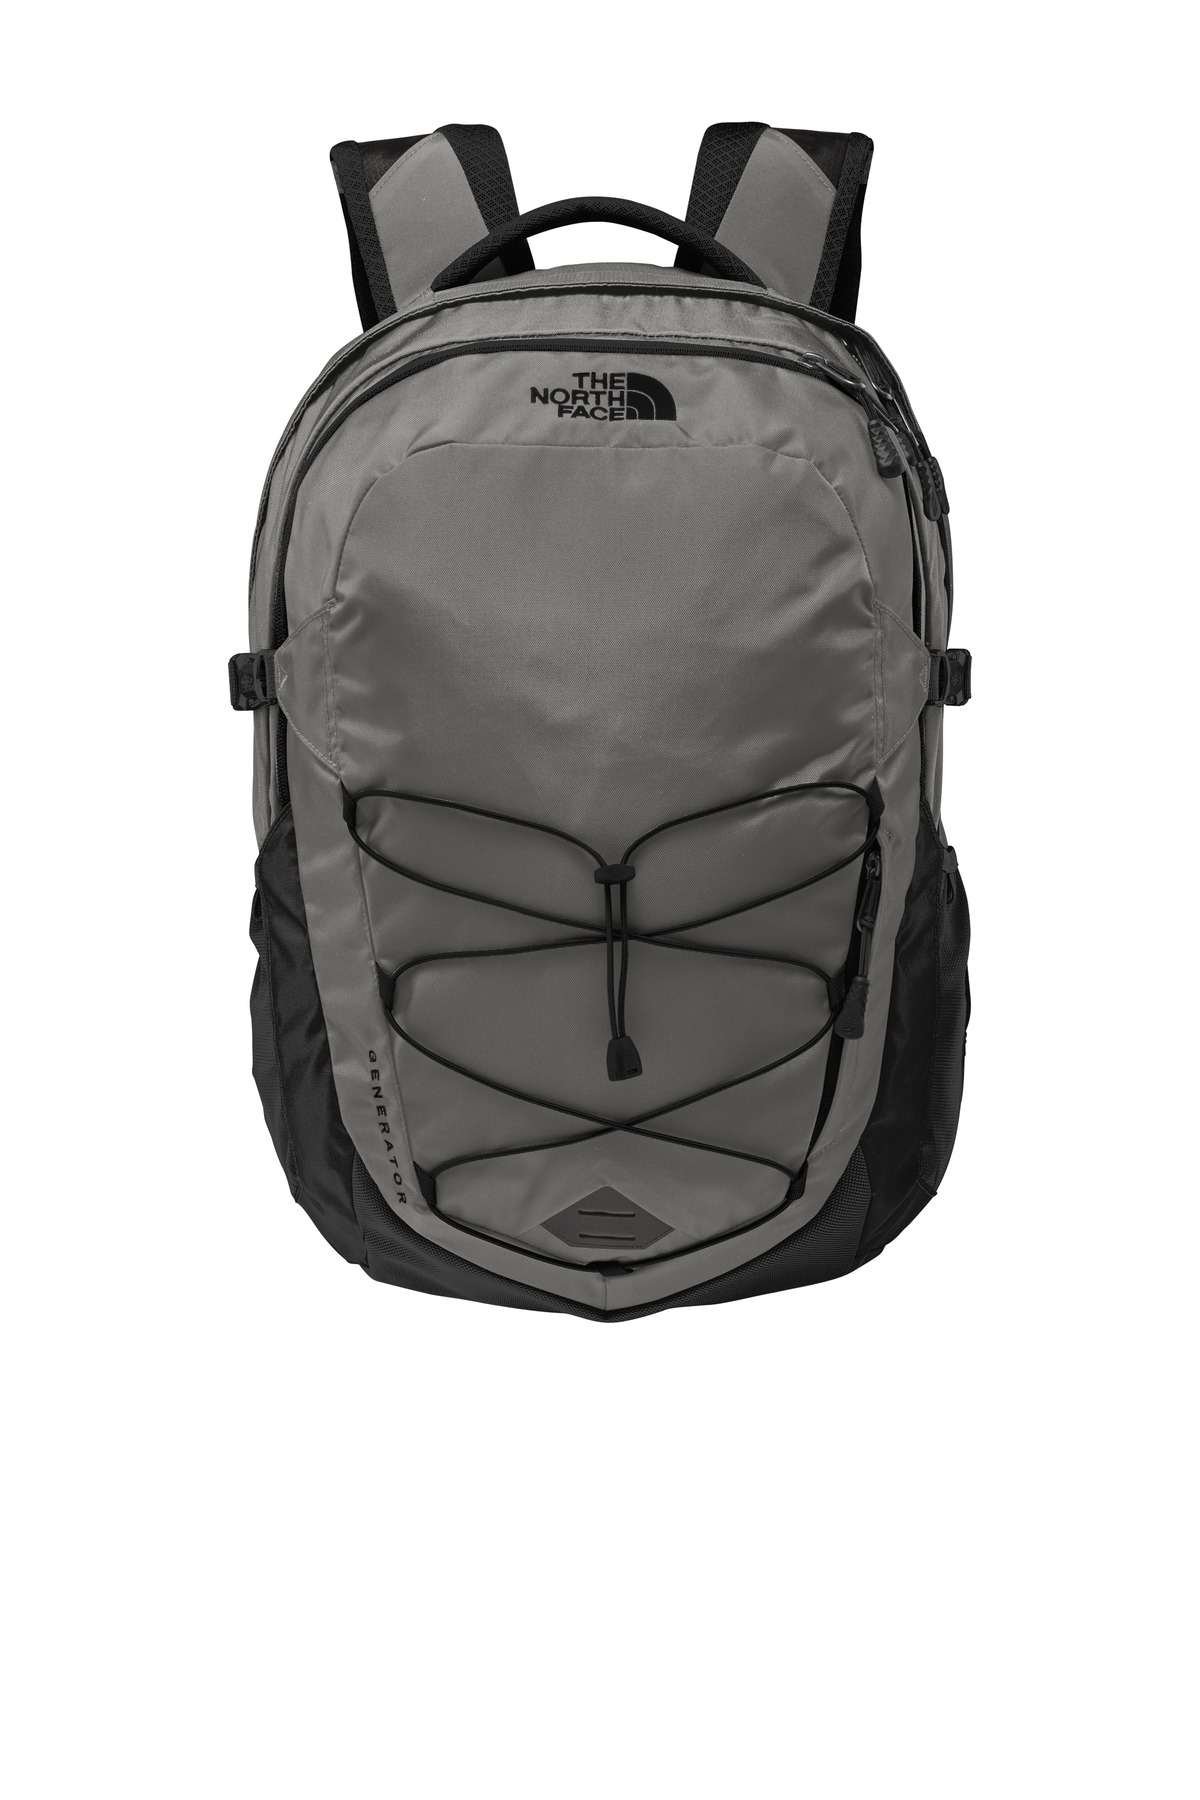 The North Face  ®  Generator Backpack. NF0A3KX5 - Zinc Grey Heather/ TNF Black